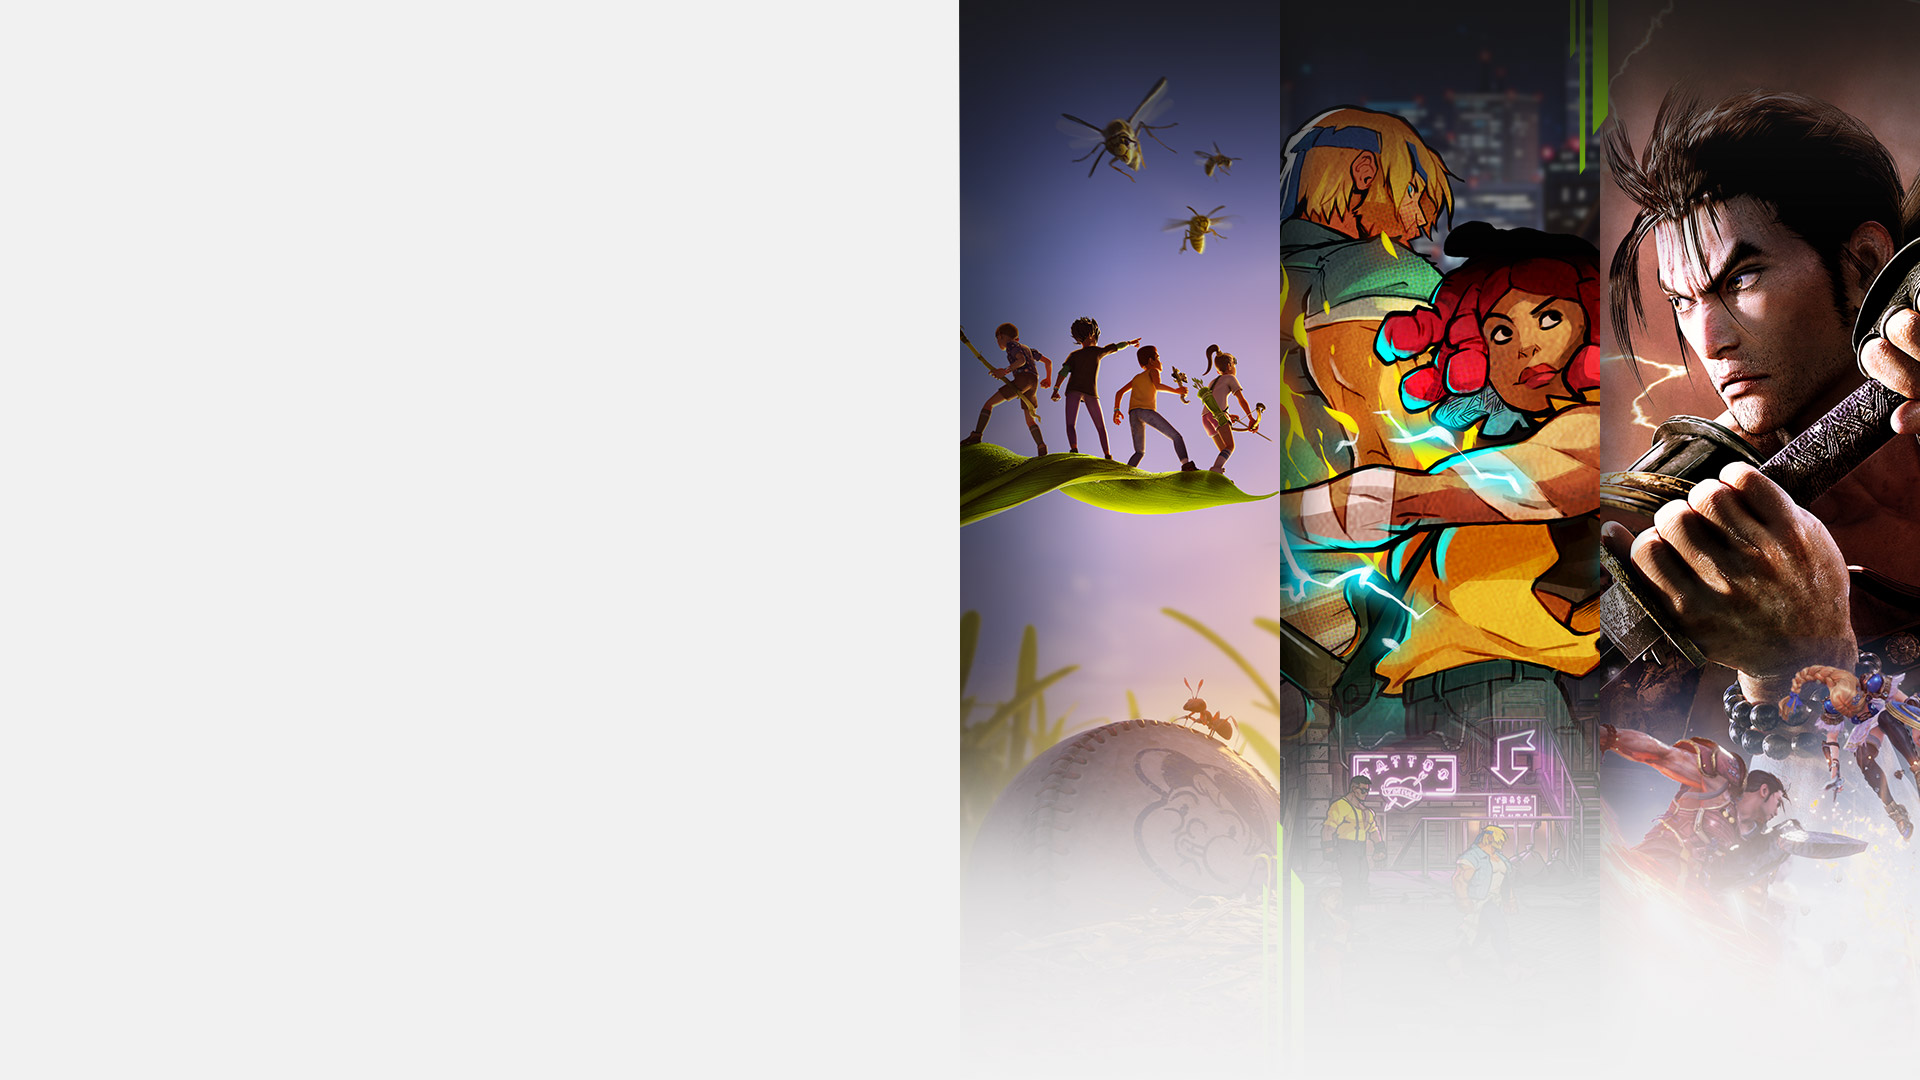 Game art from multiple games available with Xbox Game Pass including Grounded, Streets of Rage 4, SoulCalibur VI, and Minecraft Dungeons.